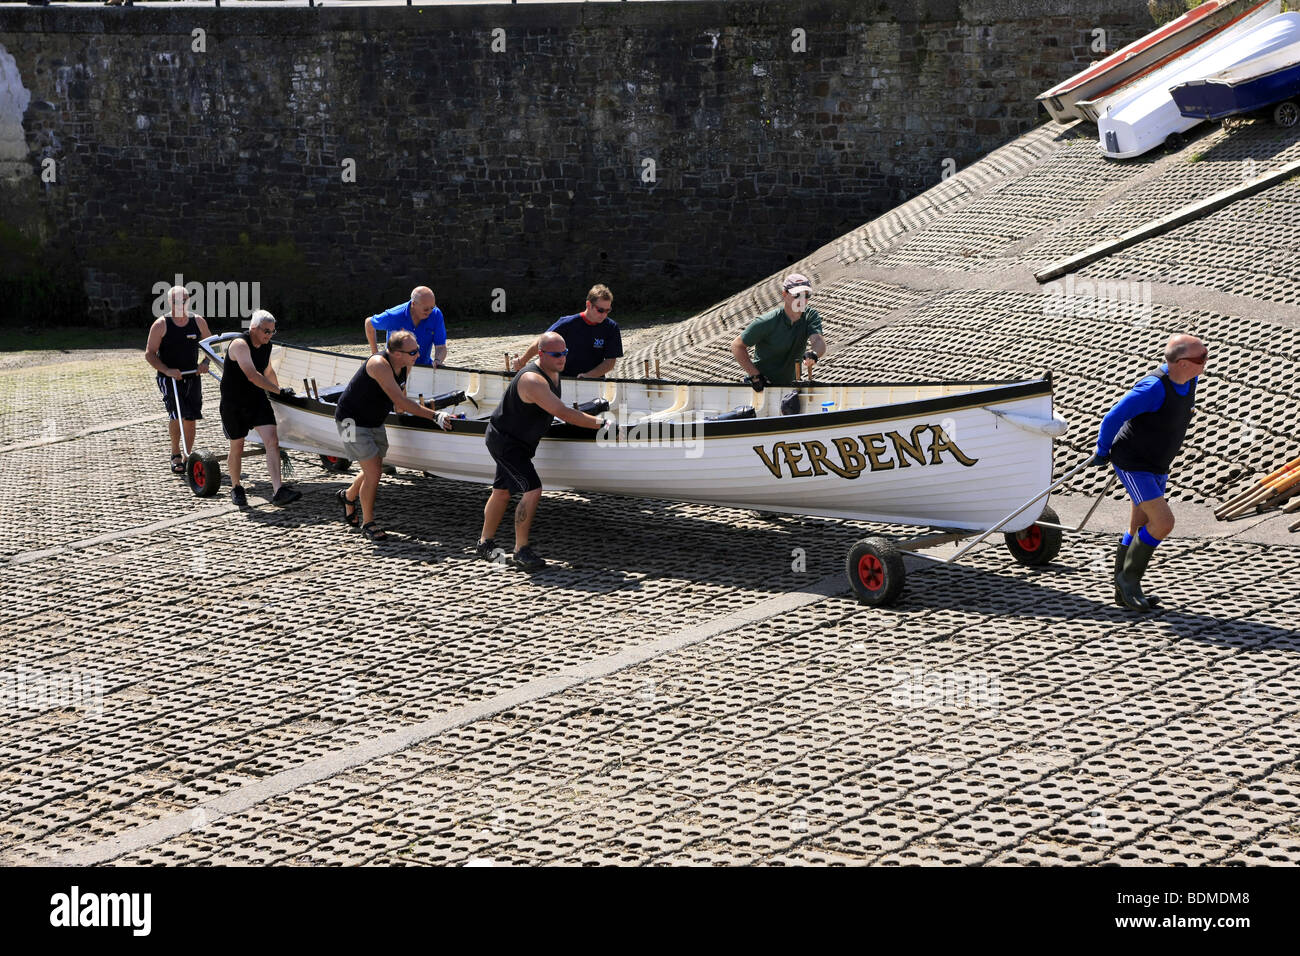 Crewmen of the Gig rowing boat called the Verbena wheel the